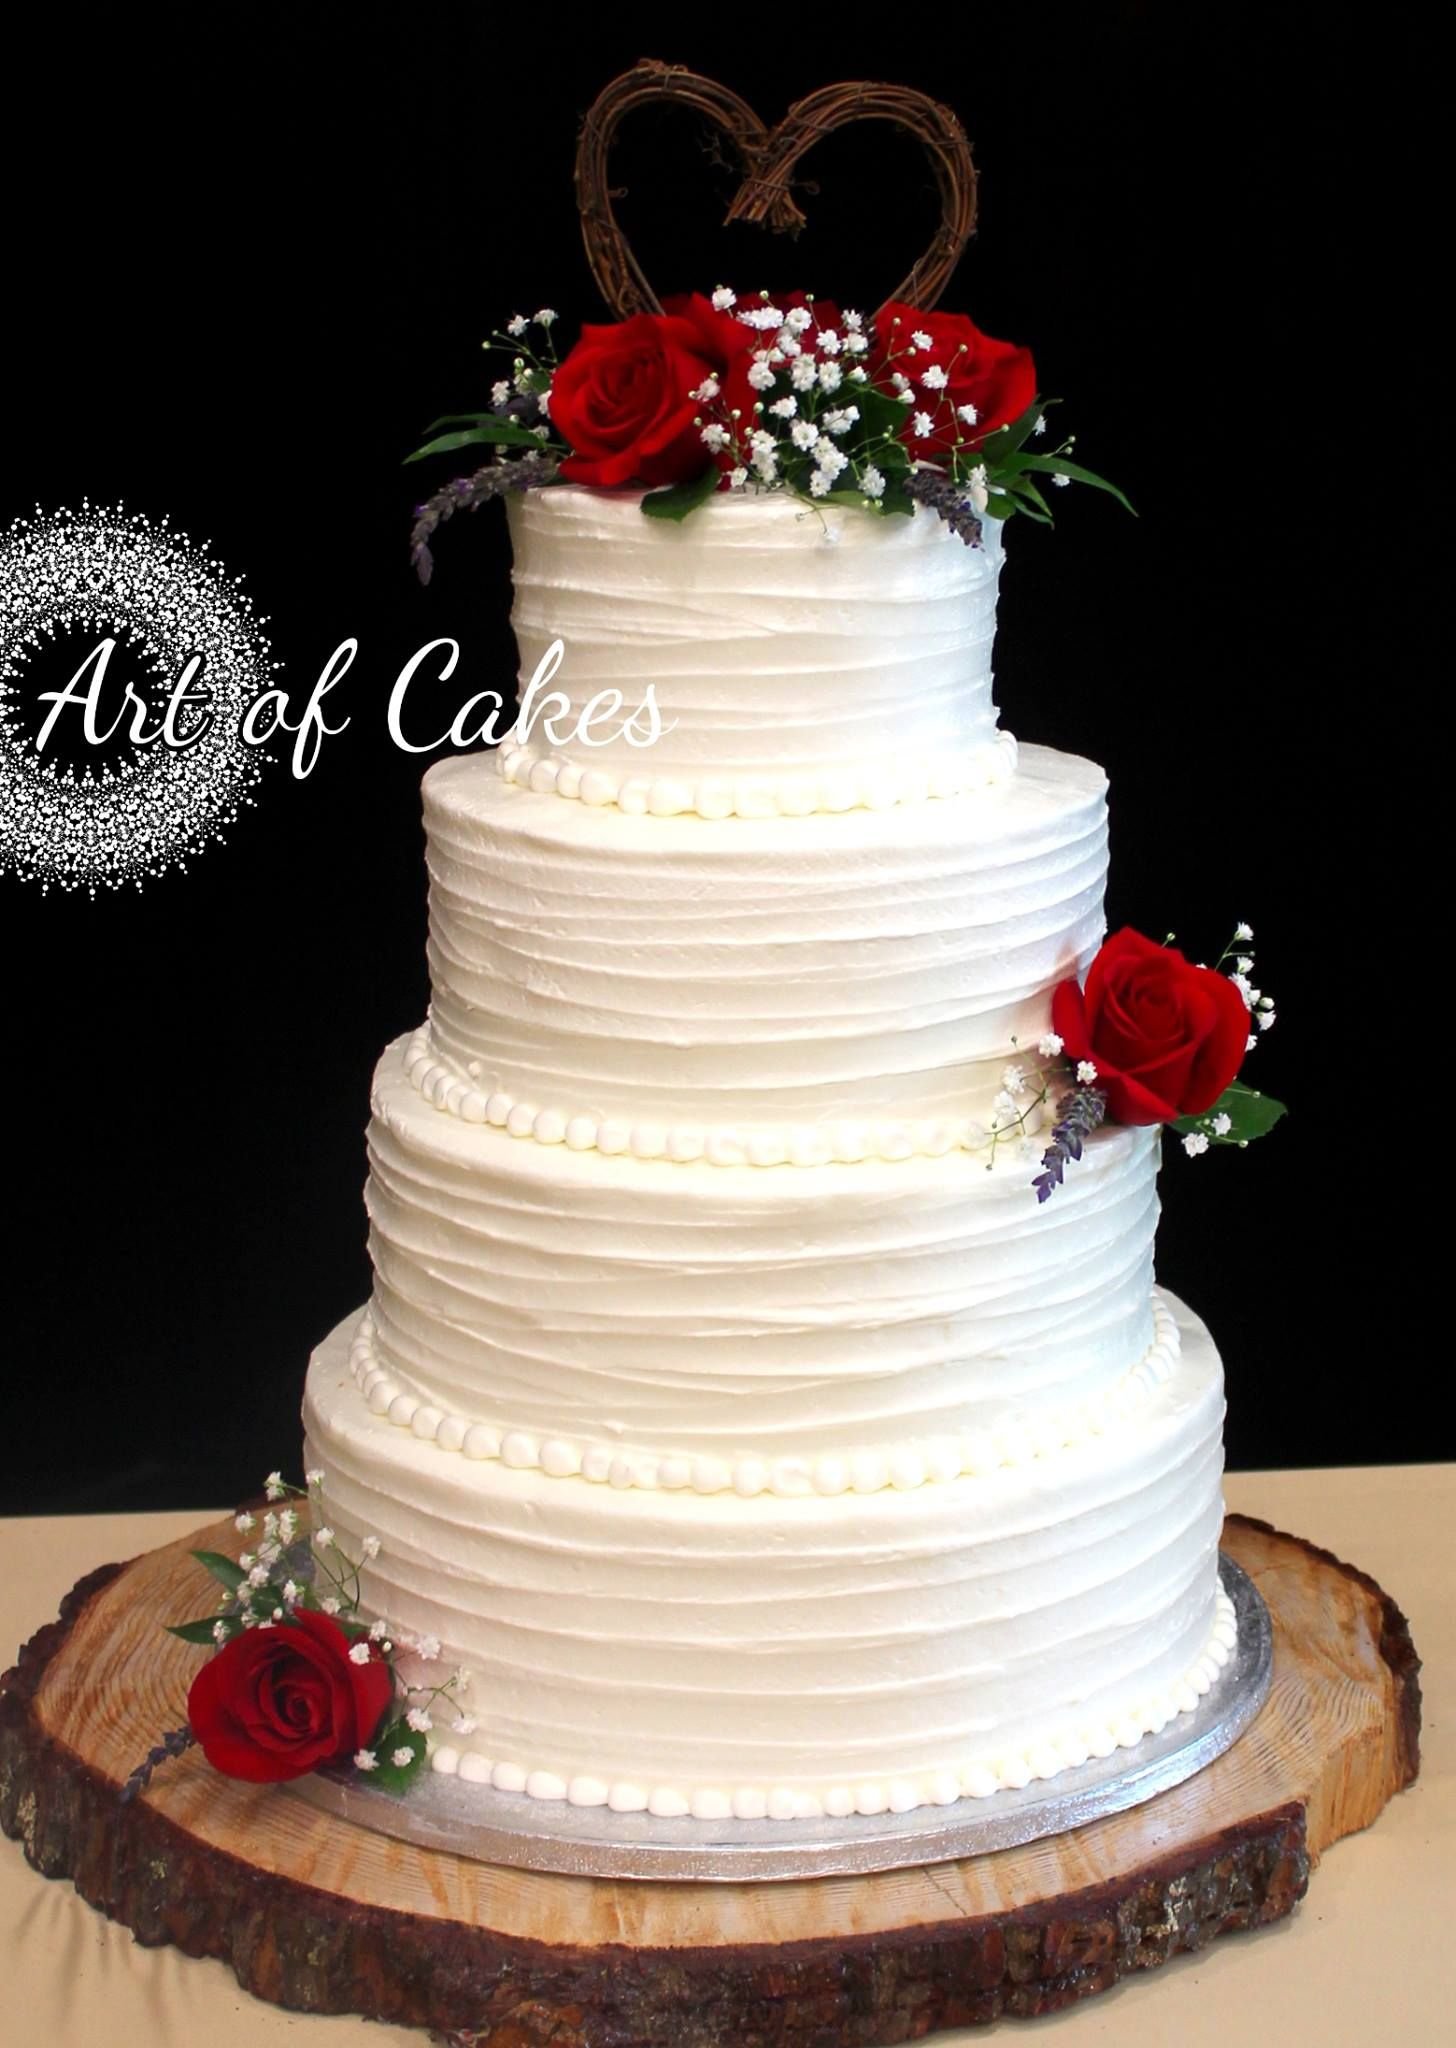 4 tier wedding cake with red roses wedding cake rustic wedding cake 4 tier wedding 10424